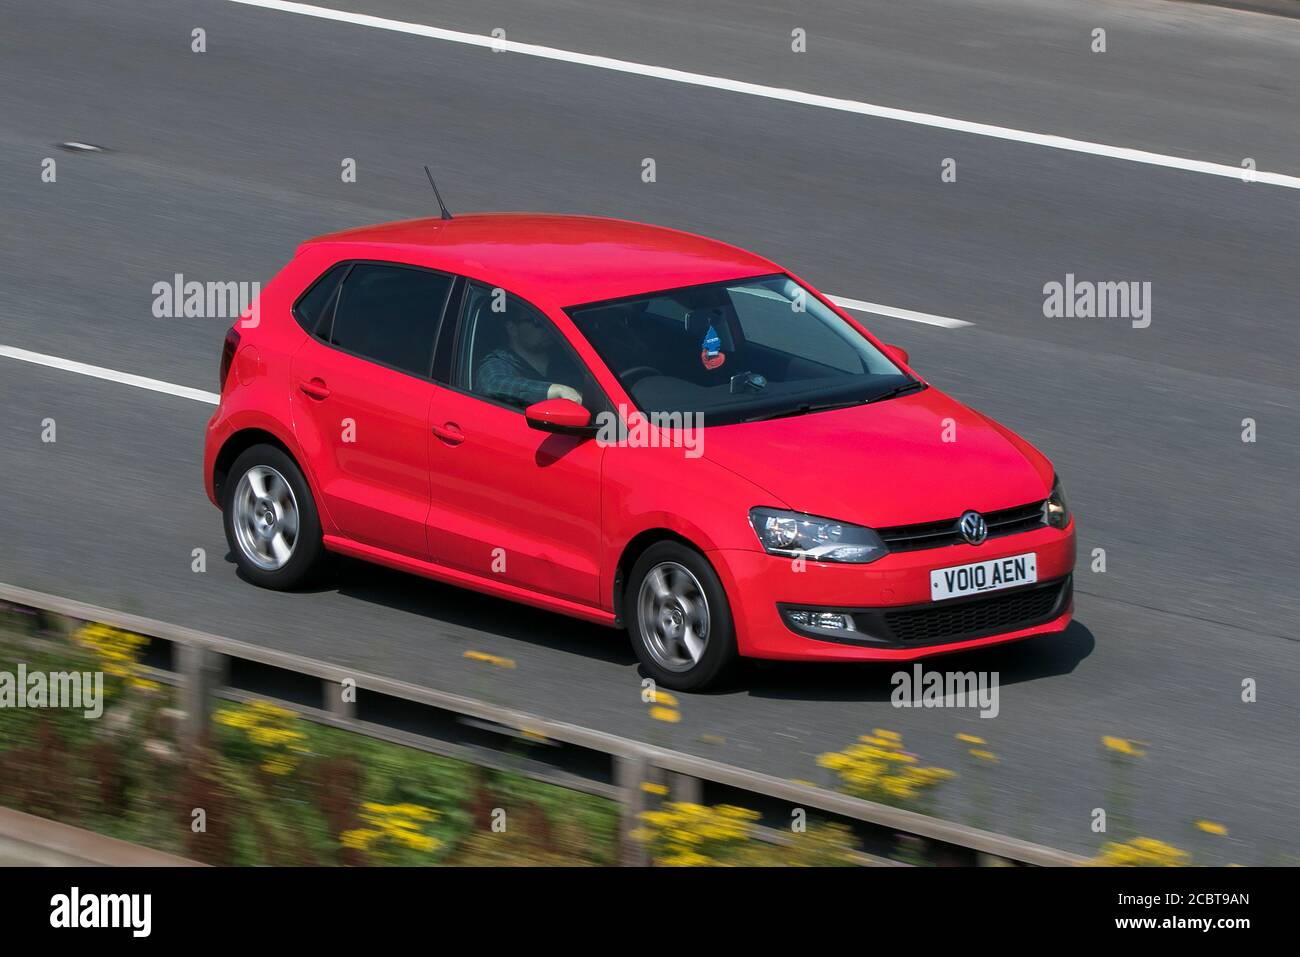 Vw Polo Car High Resolution Stock Photography And Images Alamy